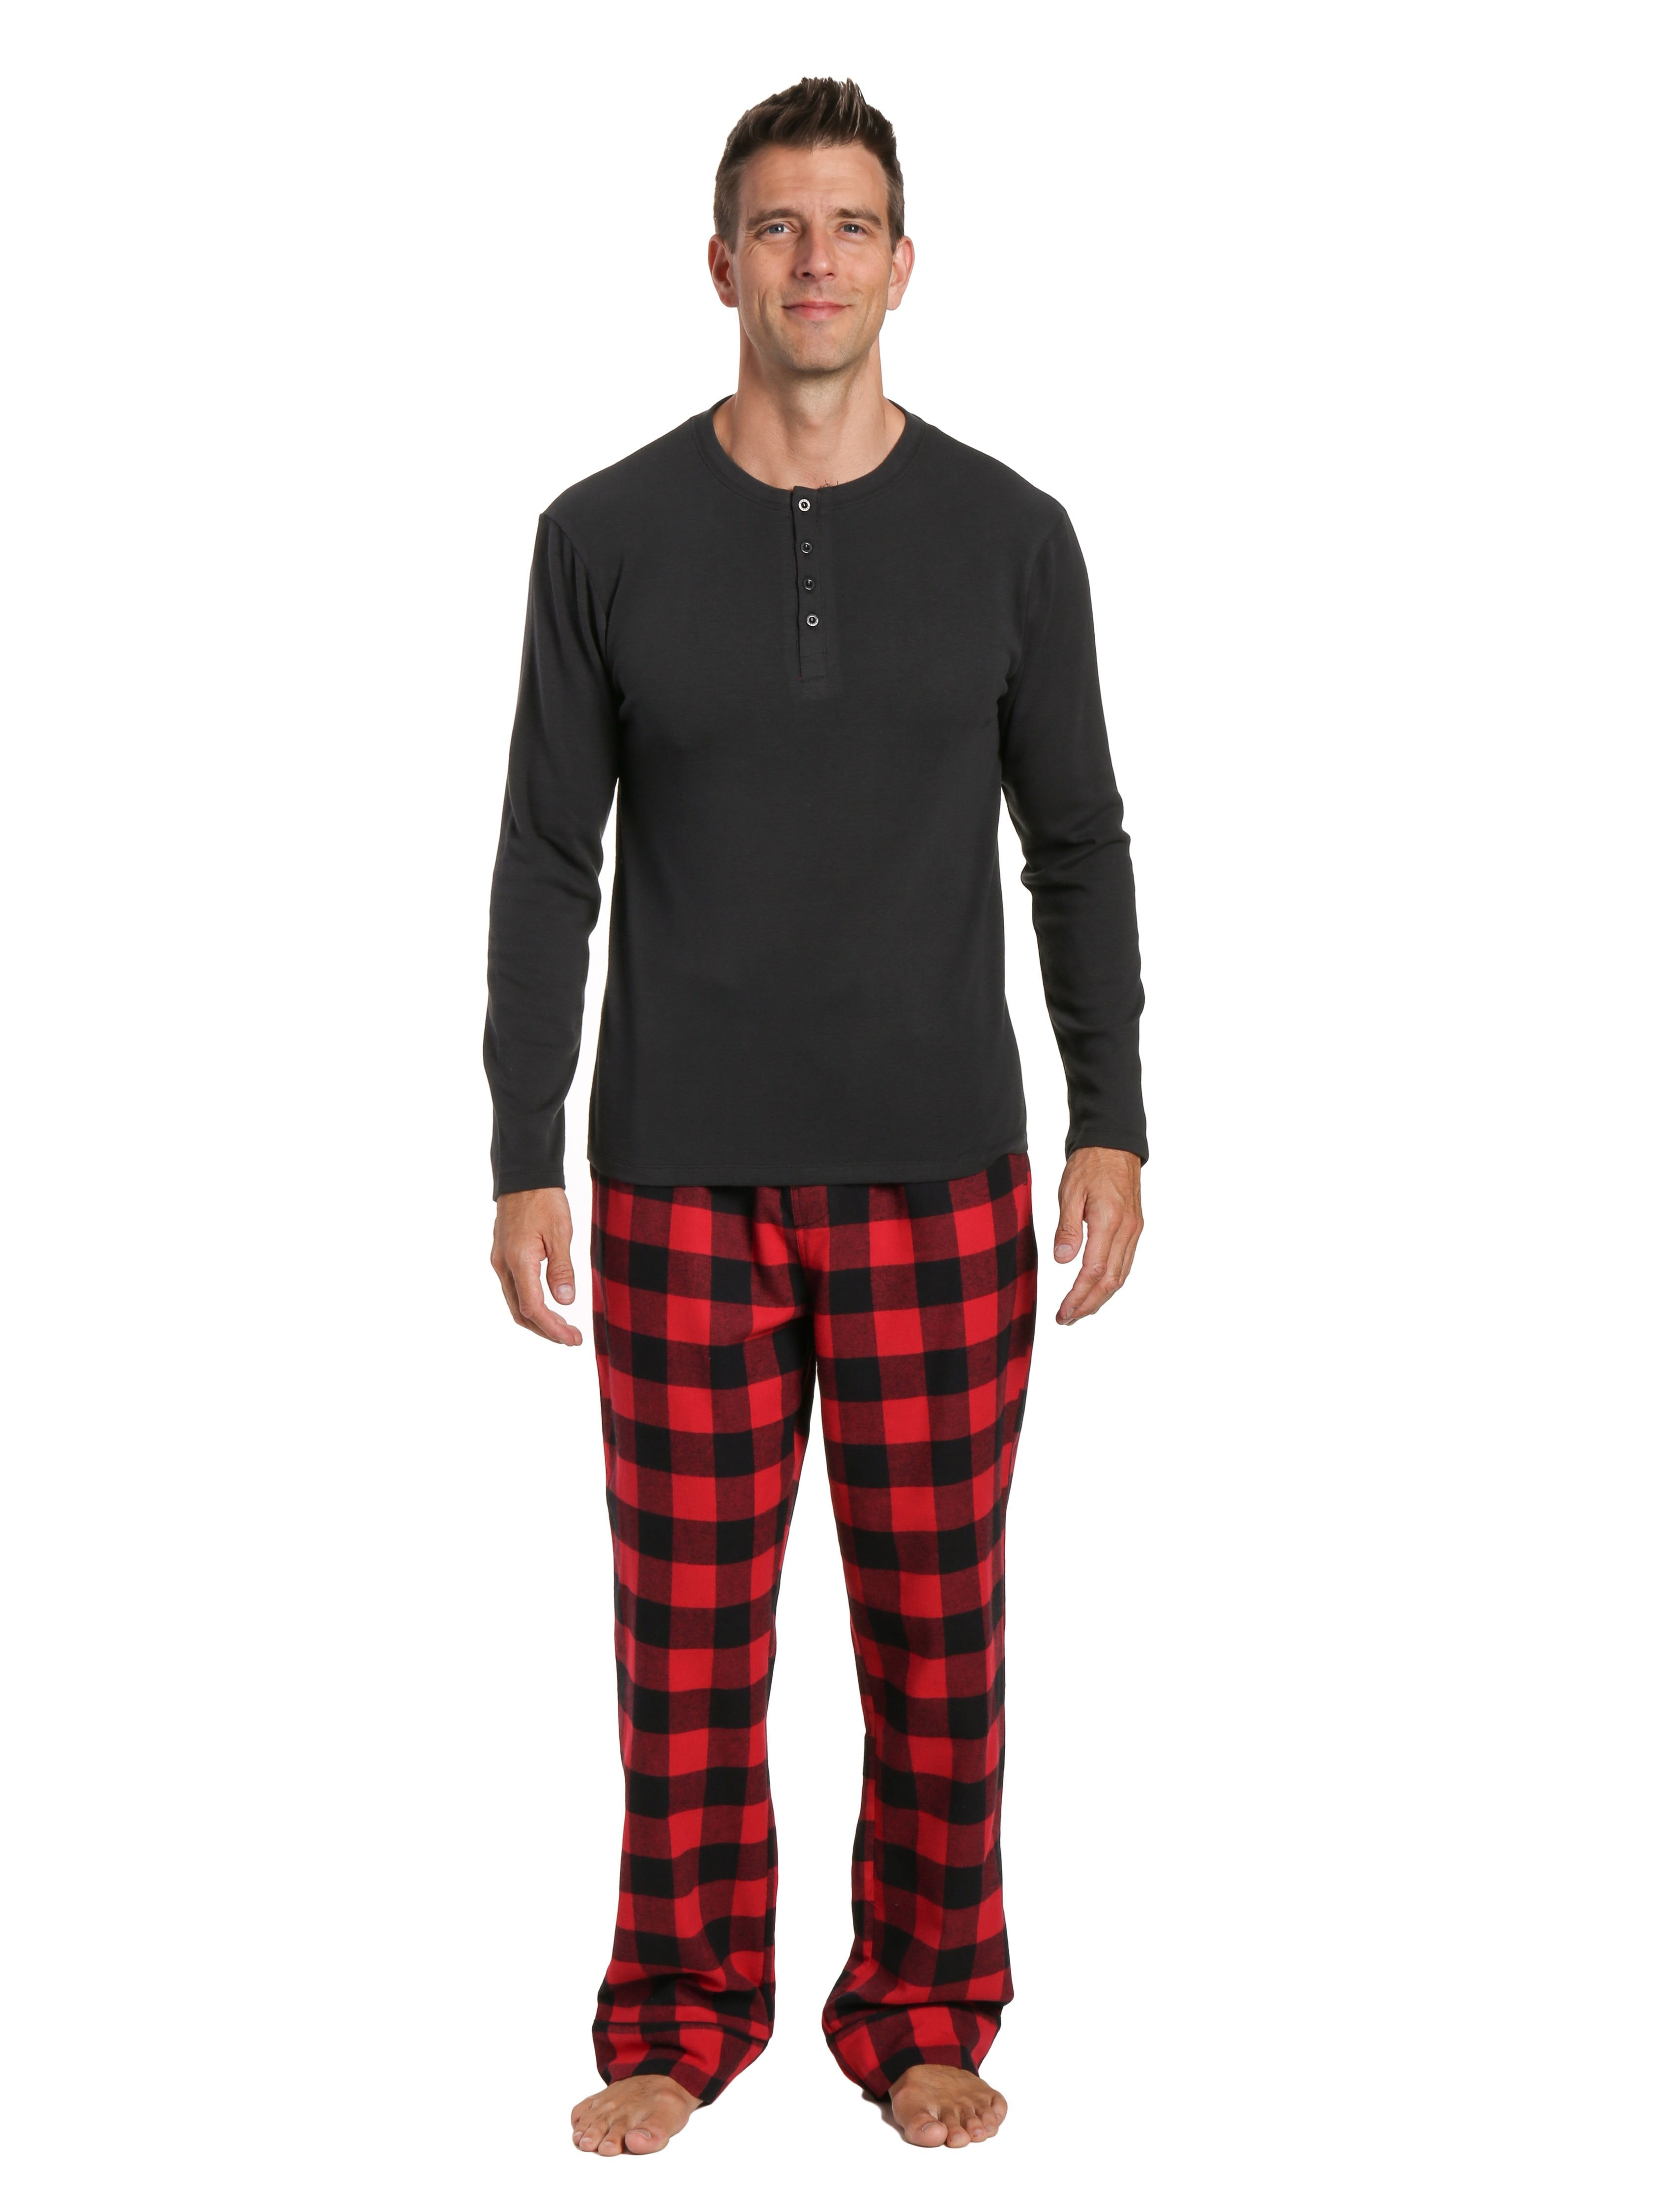 Mens Premium 100% Cotton Flannel Lounge Set - Gingham Checks - Black-Red